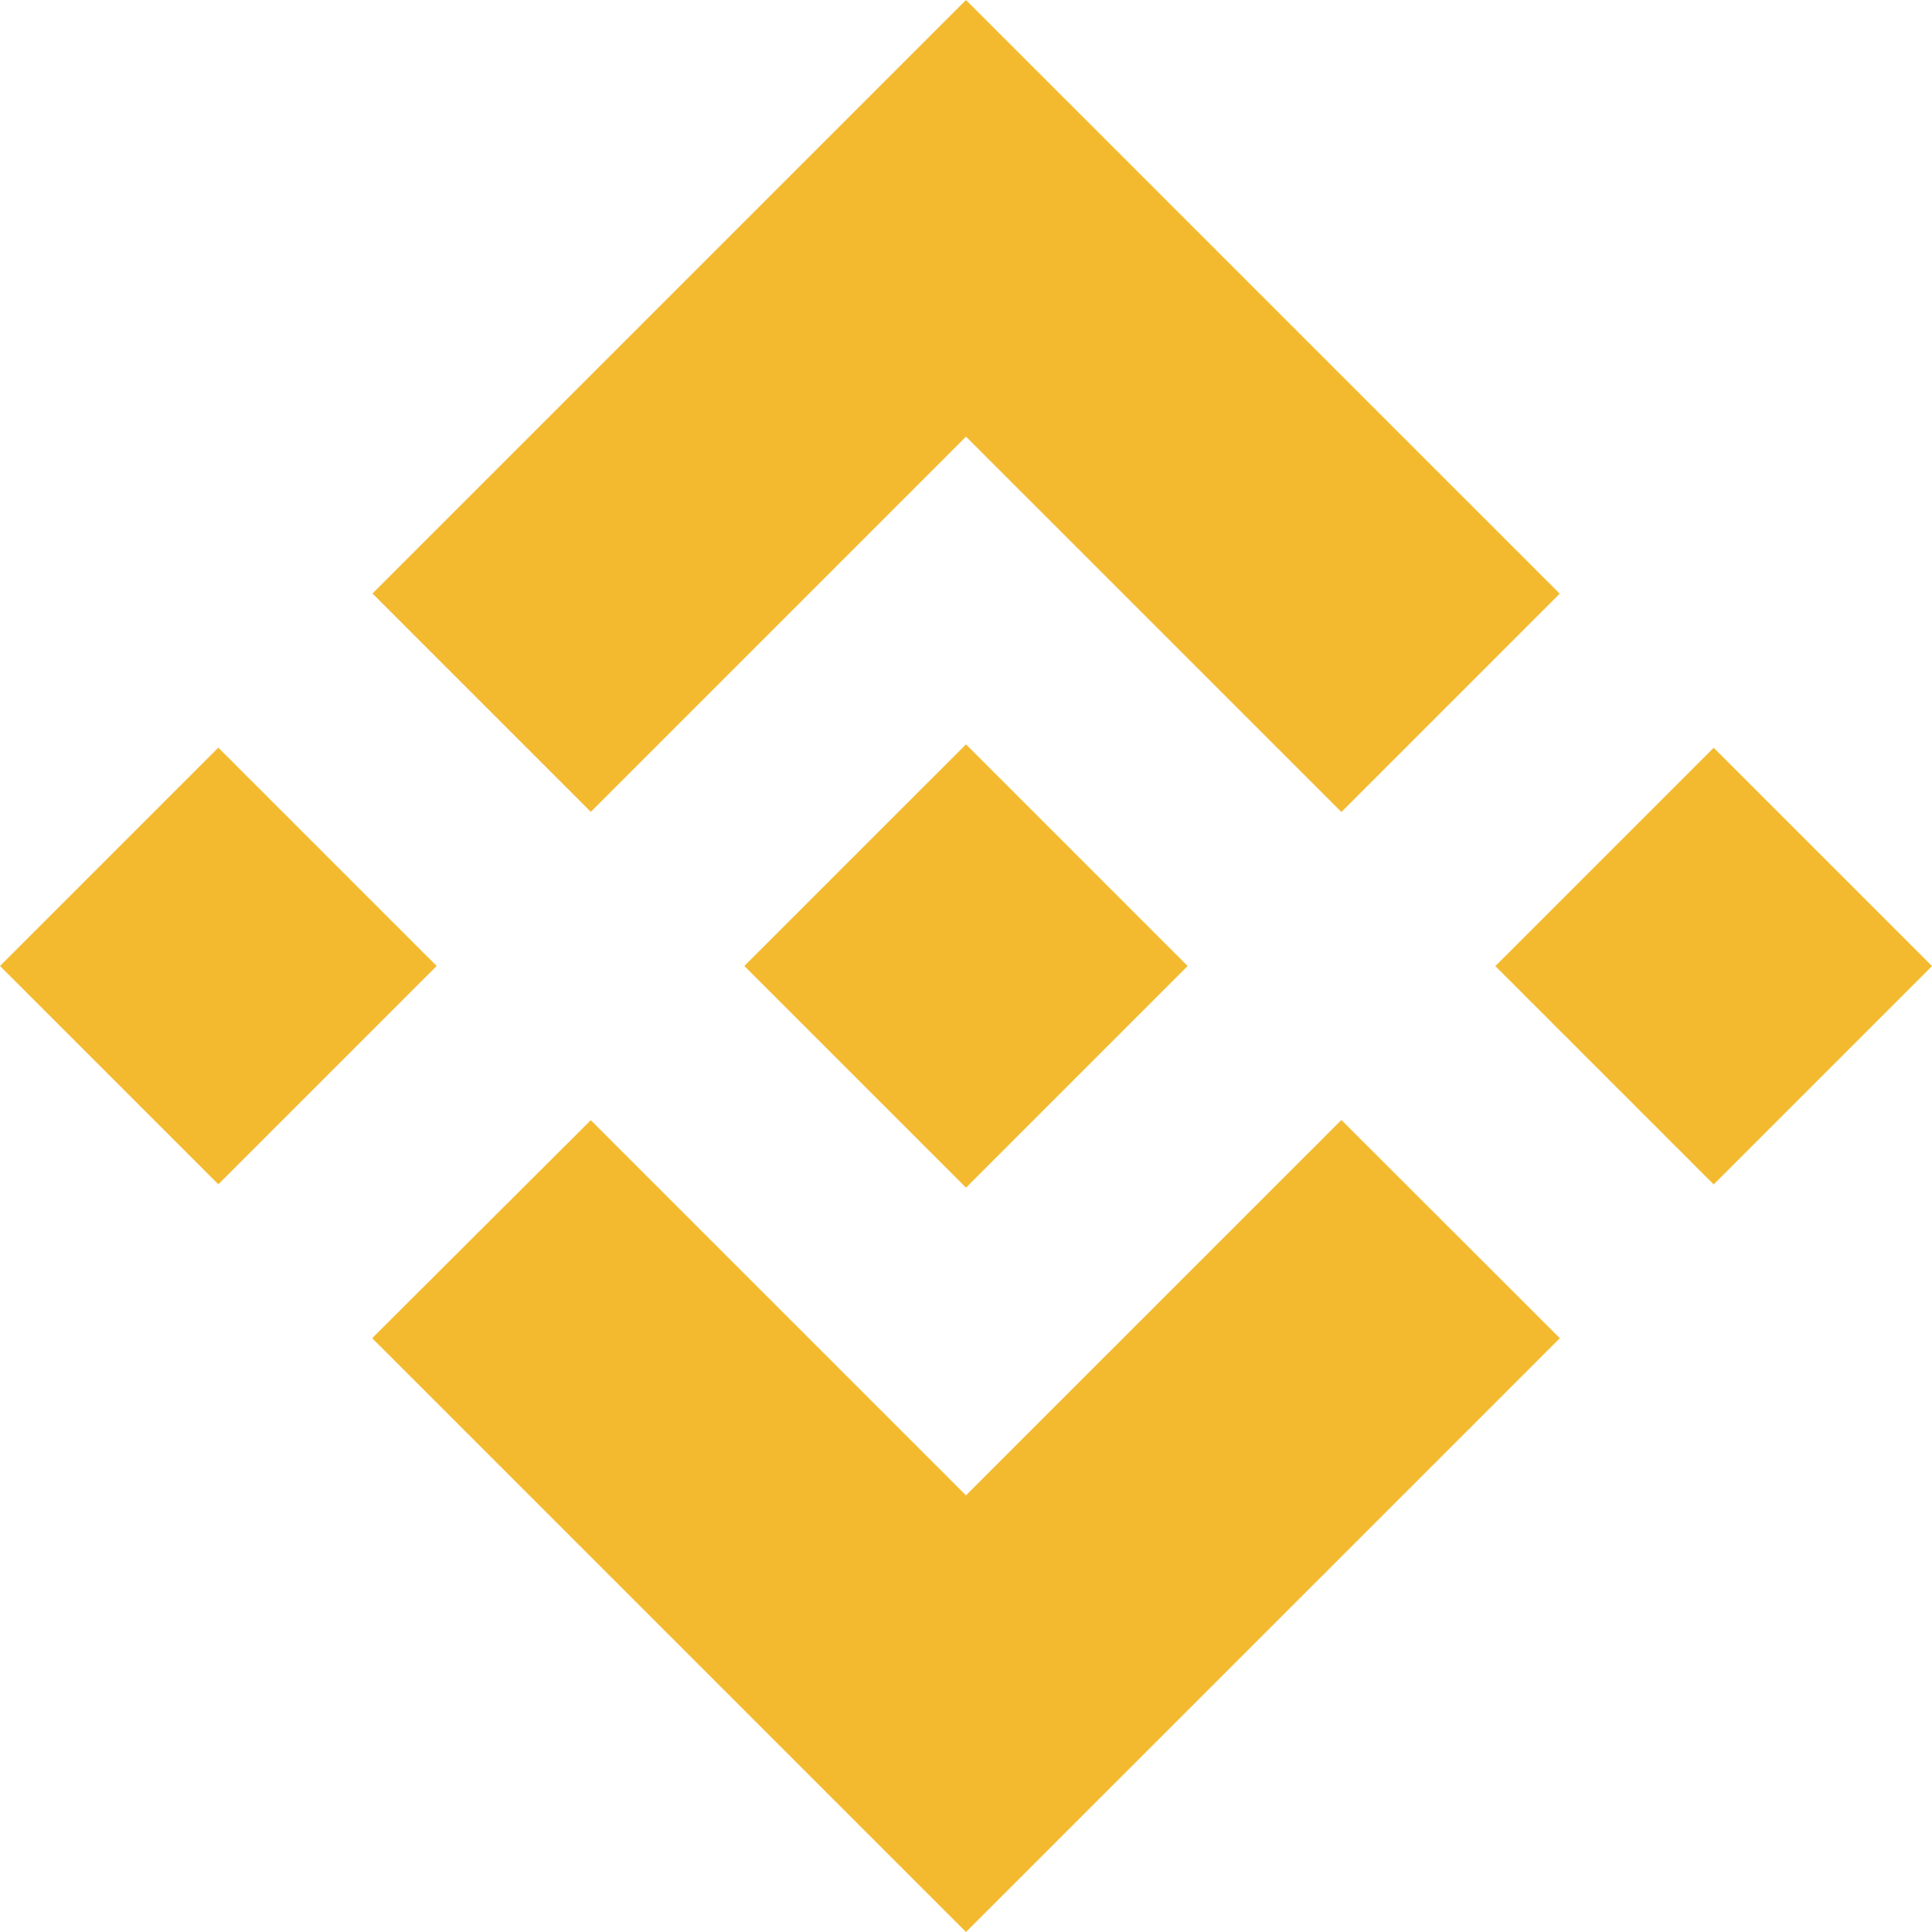 Binance Coin (BNB) Logo .SVG and .PNG Files Download